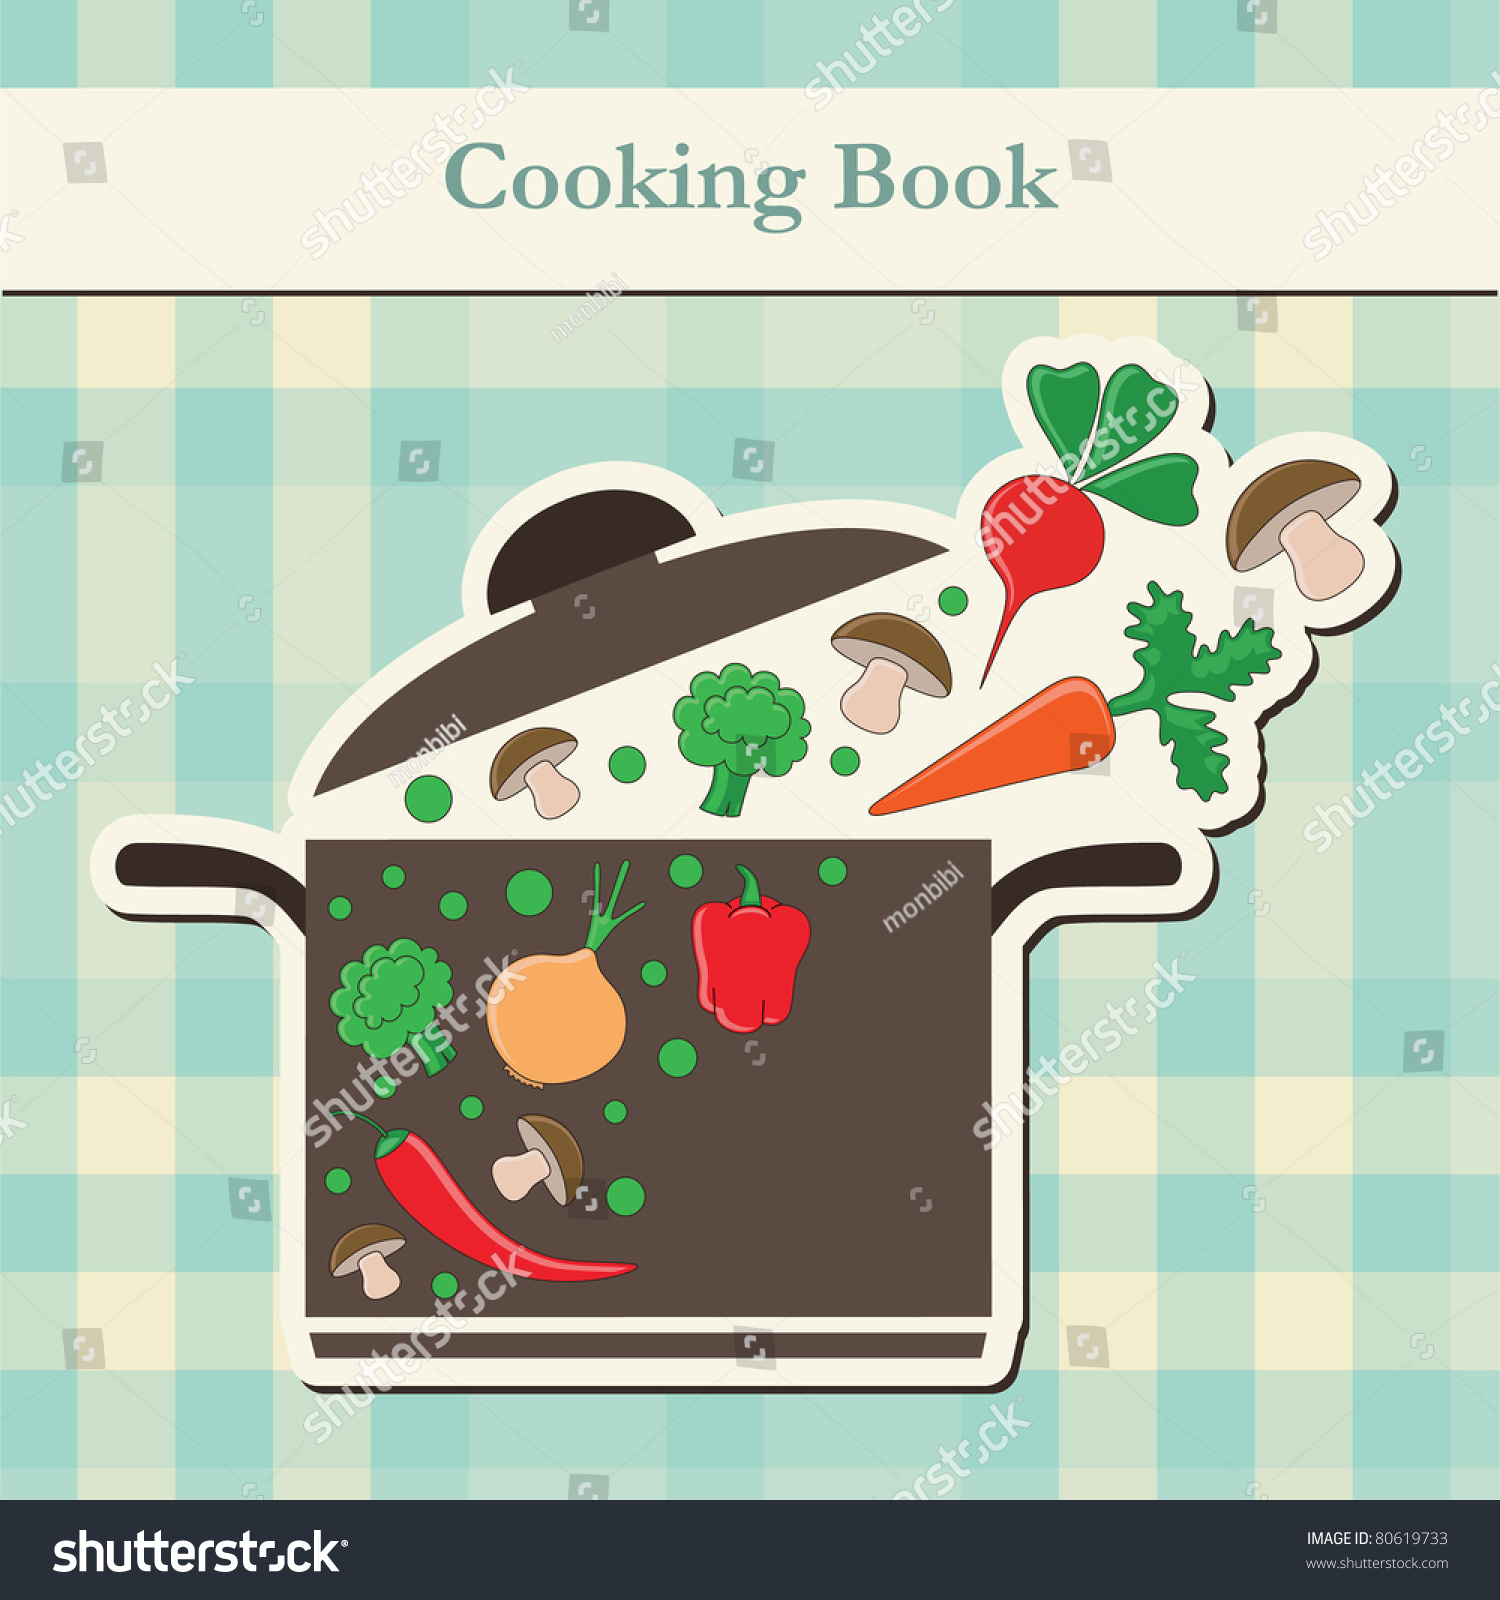 Pretty Book Cover Vector : Cooking book cover vector illustration